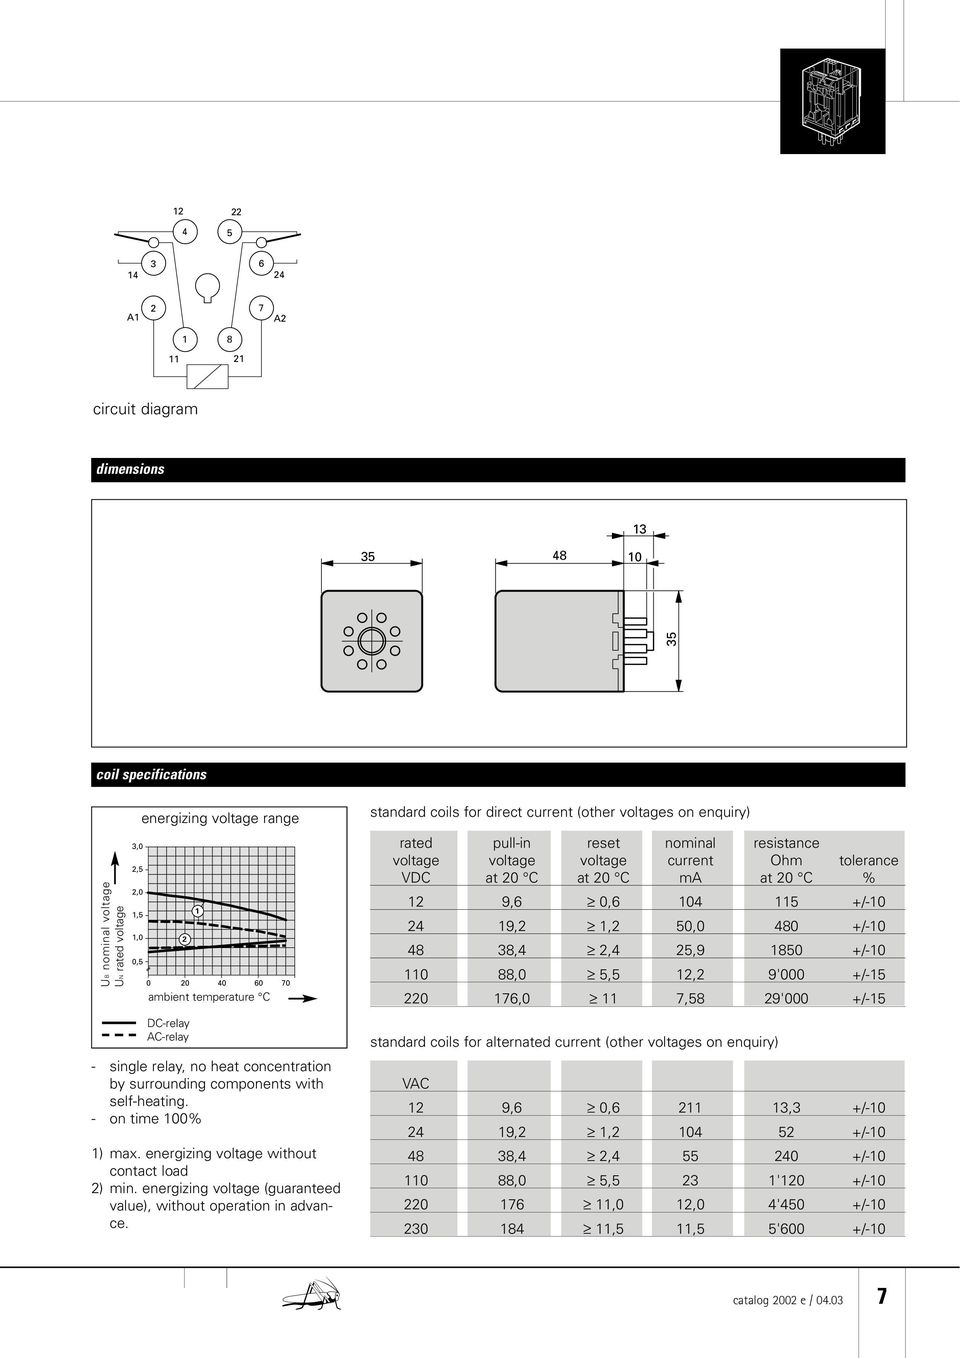 Elesta Elektrotechnik Ag Industry Relays And Accessories Pdf Reed Relay Contact Protection Diagram 1 06 04 5 0 4 9 500